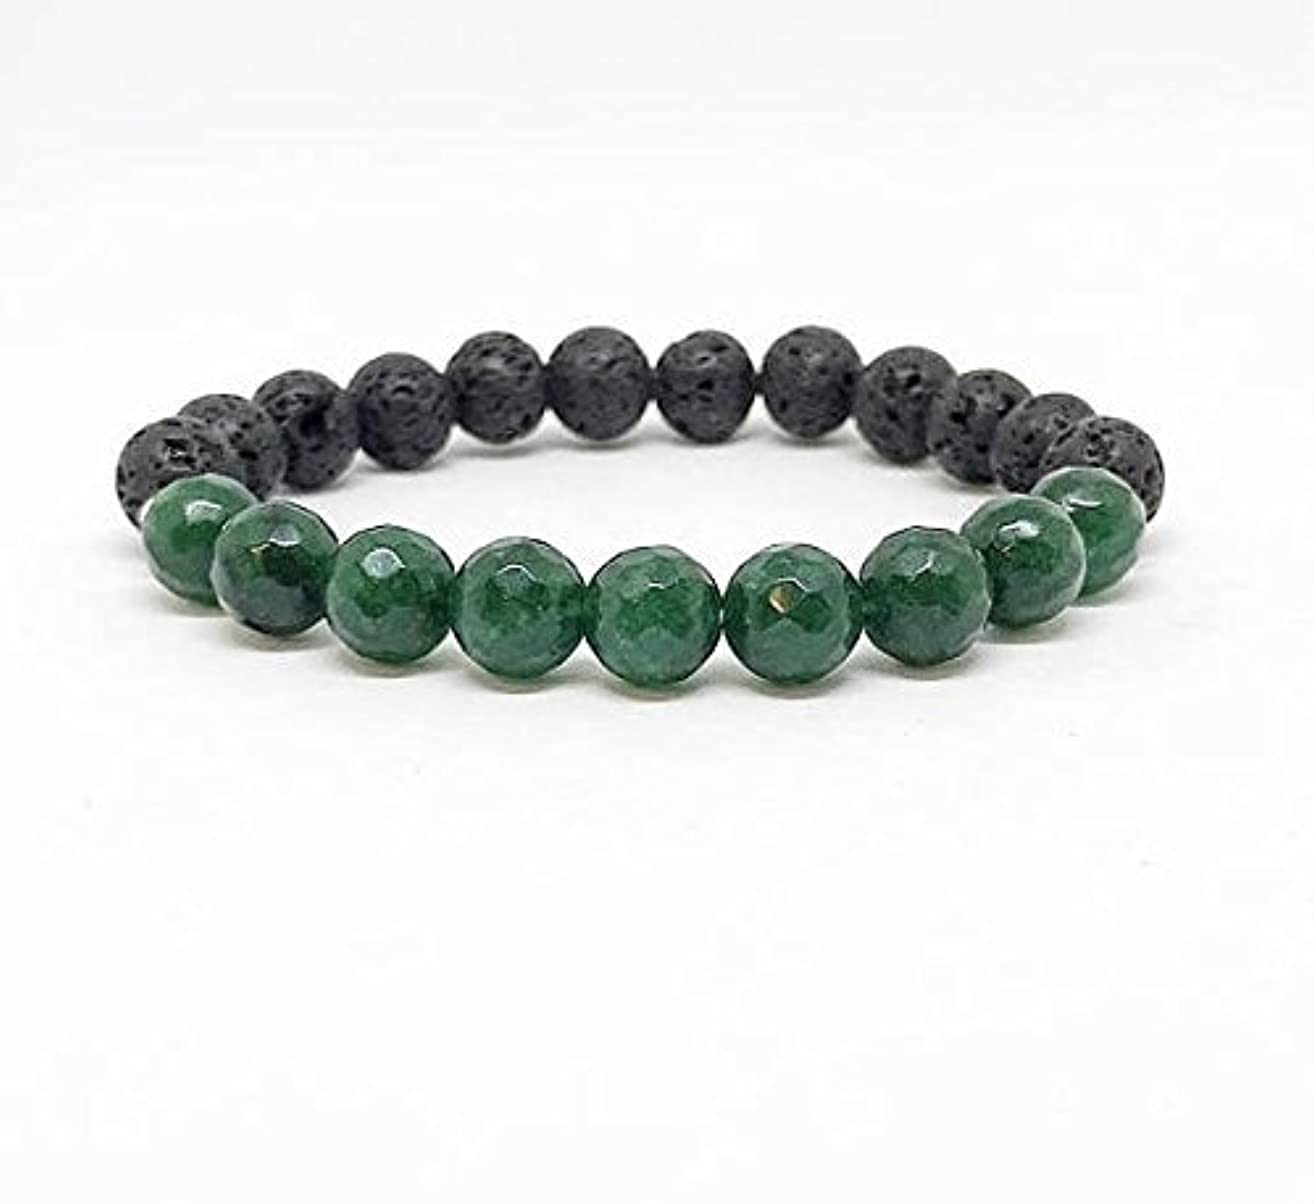 Emerald Jade, May Birthstone Lava Rock Diffuser Bracelet, Unique Gifts, Essential Oil Accessories, Gemstone Bracelet, Lava Stones, Oil Diffuser